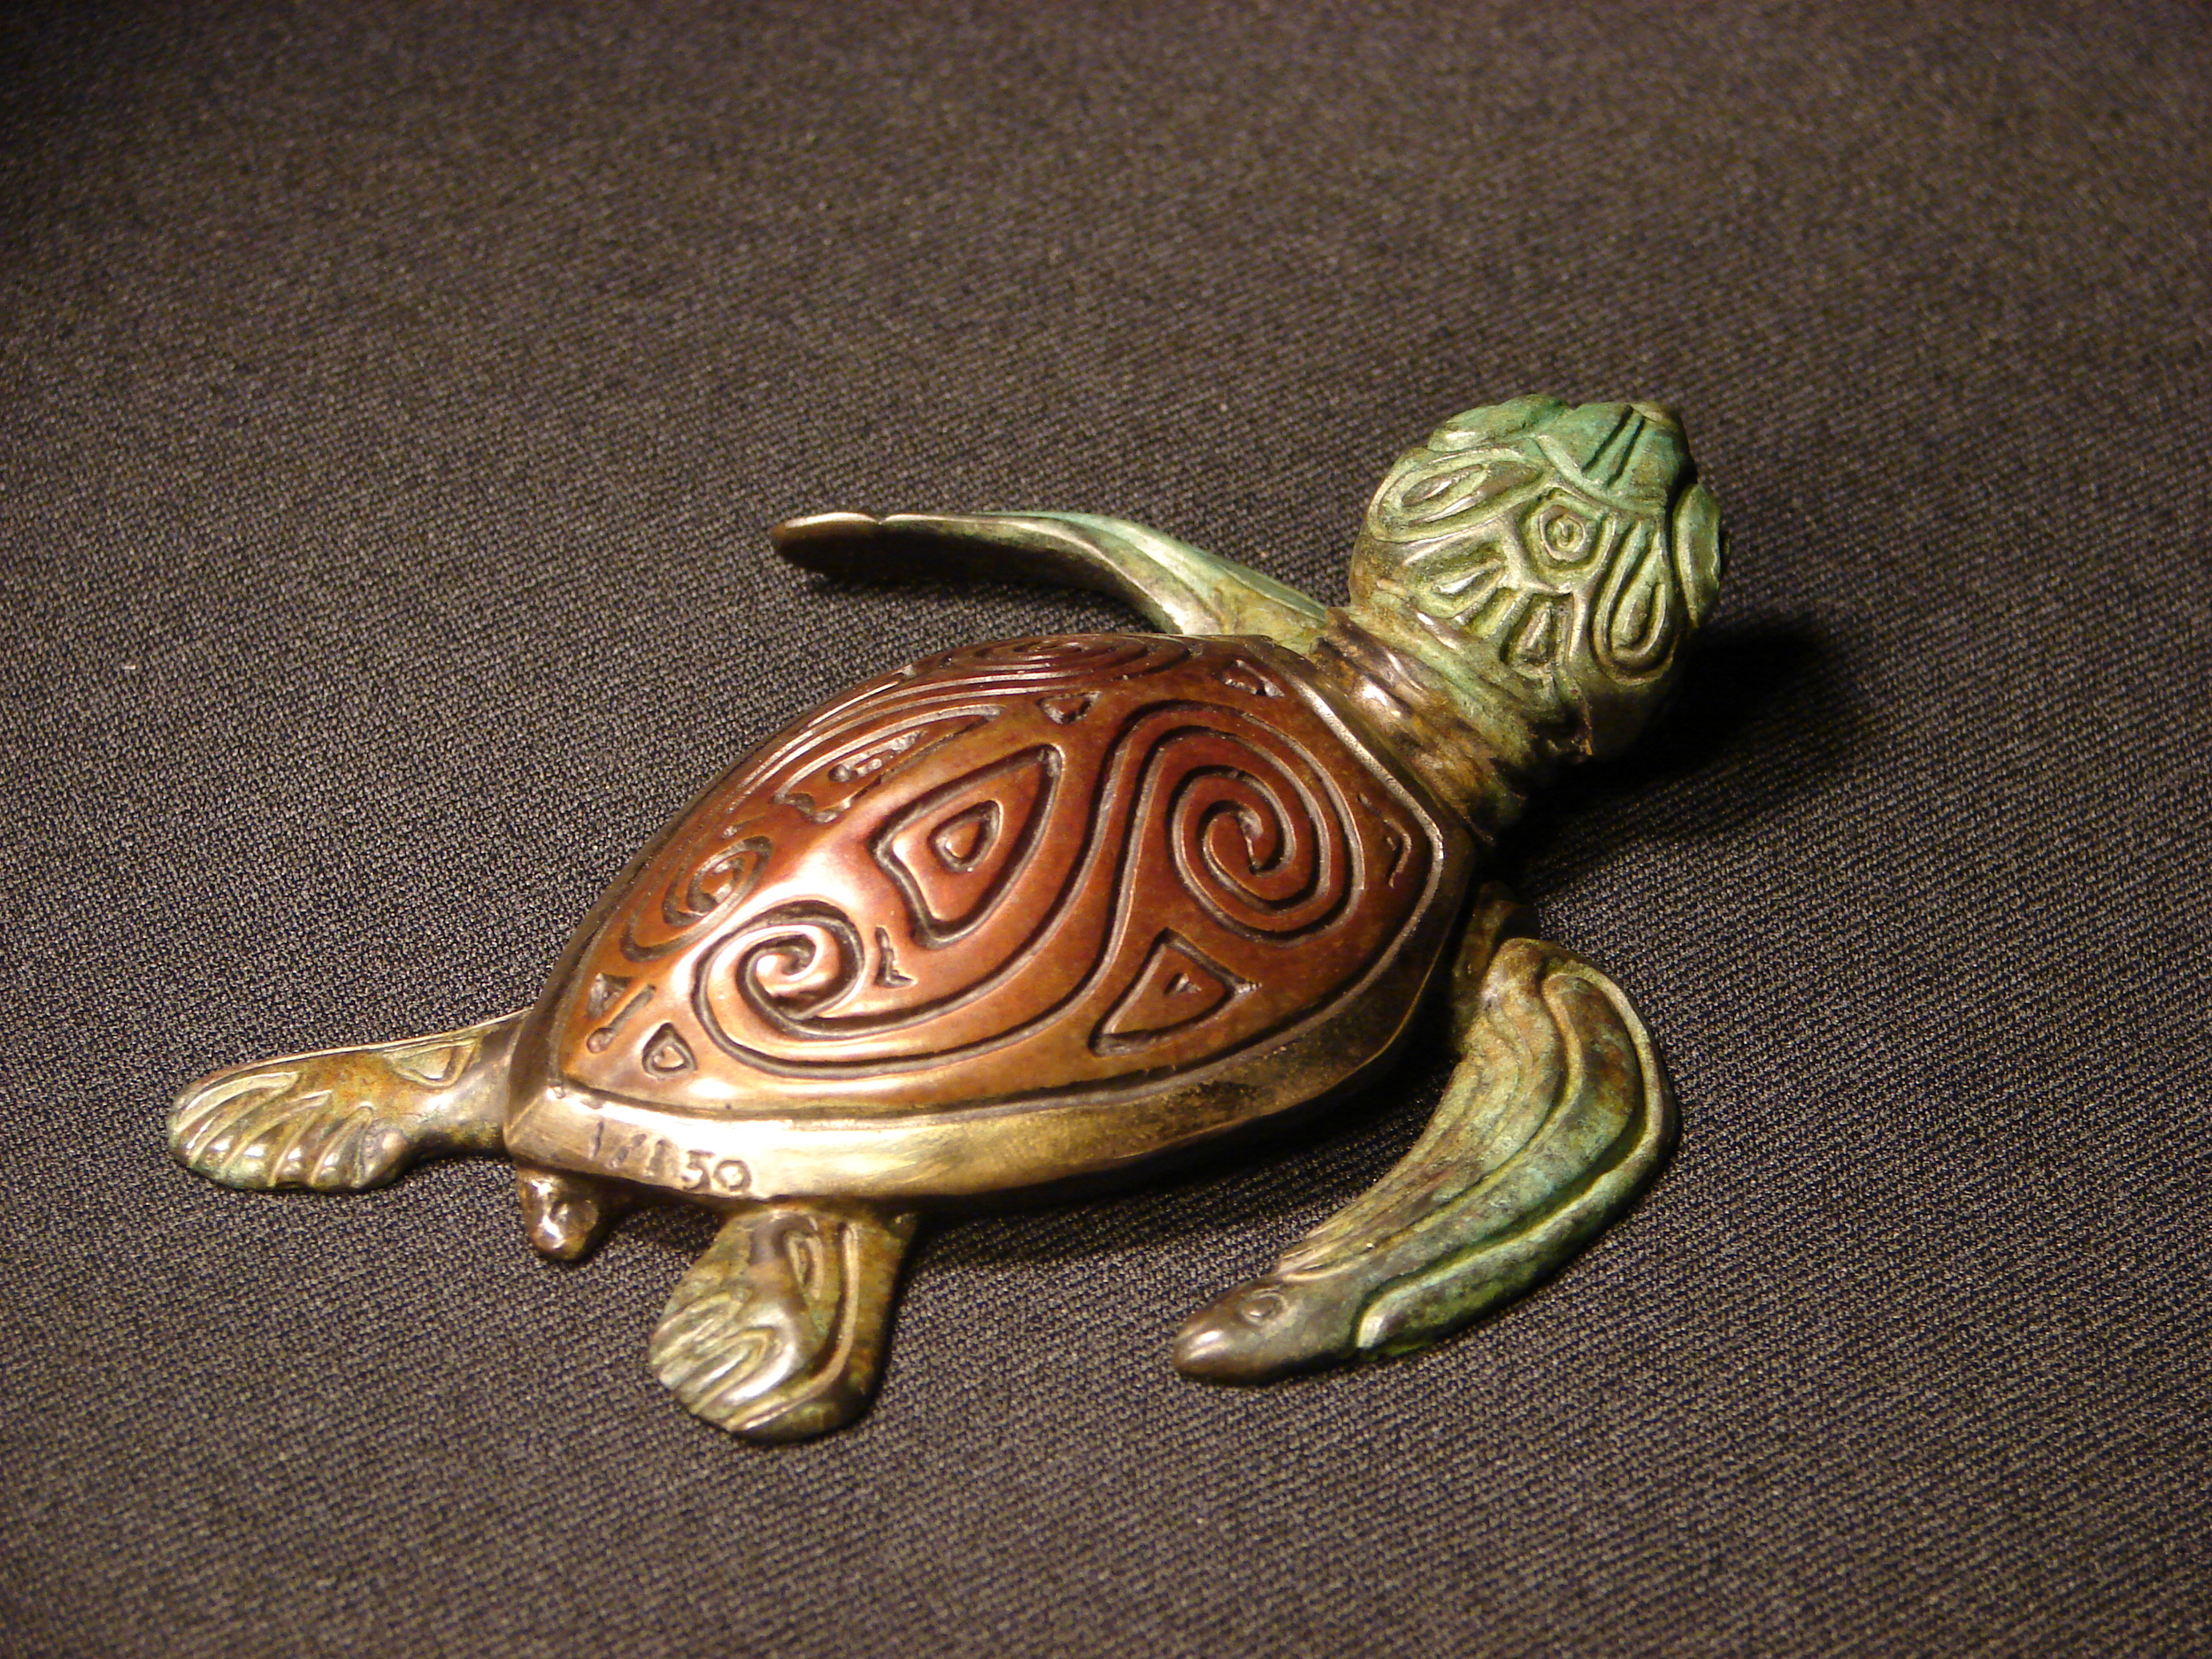 bronze-sea-turtle-sculpture-john-maisano-2.jpg